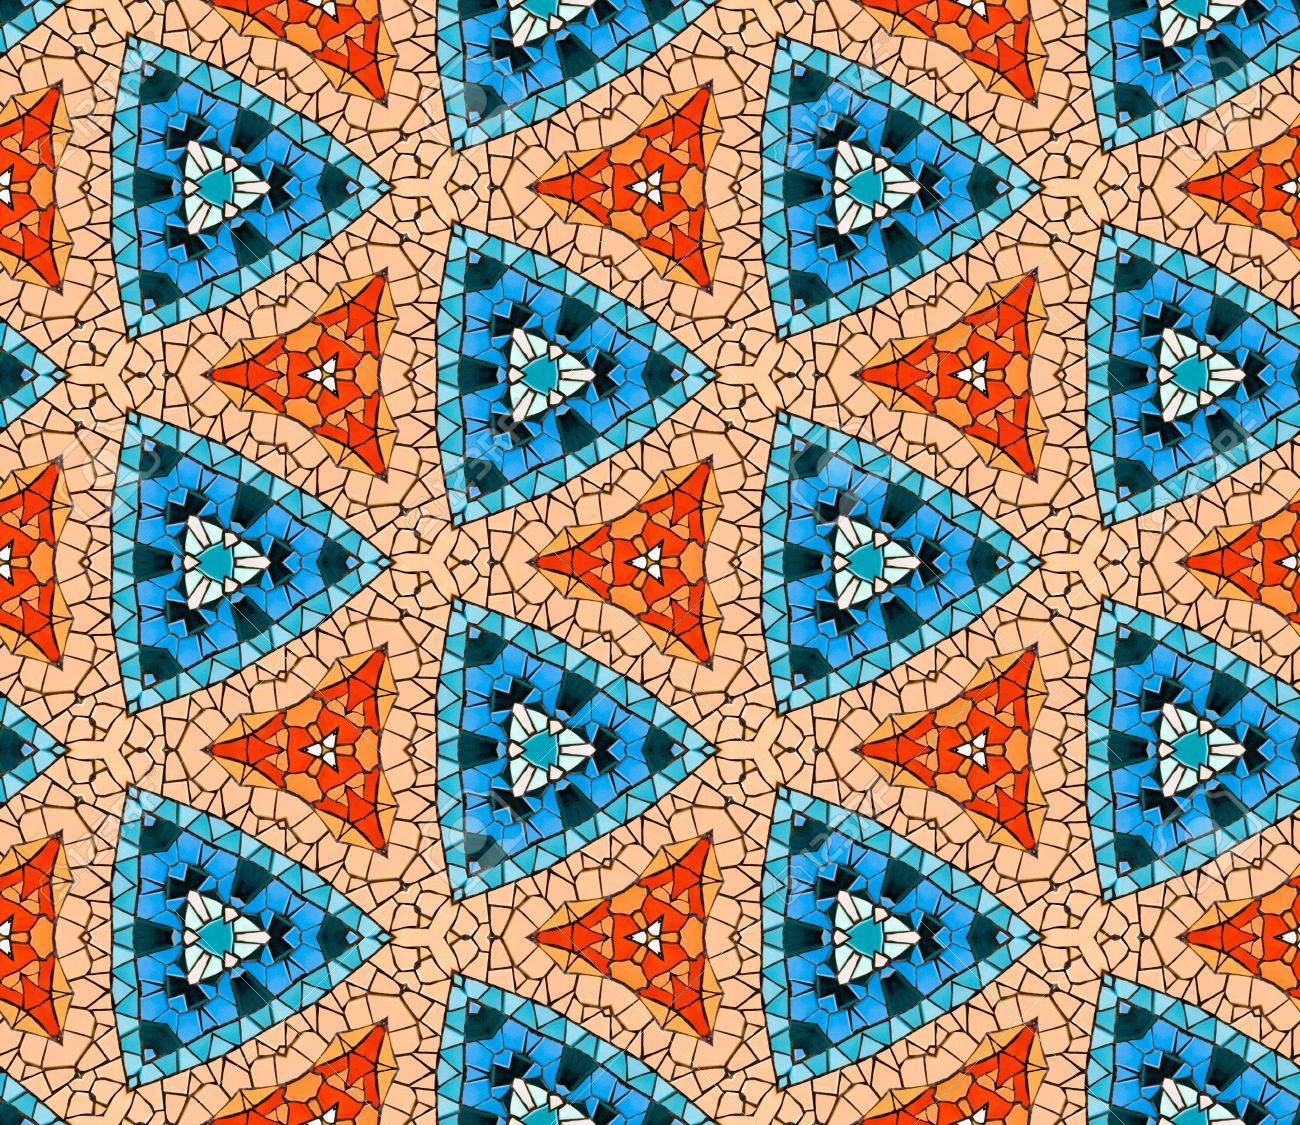 Seamless tiled mosaic pattern of kaleidoscopic altered hexagonal seamless tiled mosaic pattern of kaleidoscopic altered hexagonal real ceramic tiles arranged to form colorful triangle dailygadgetfo Images